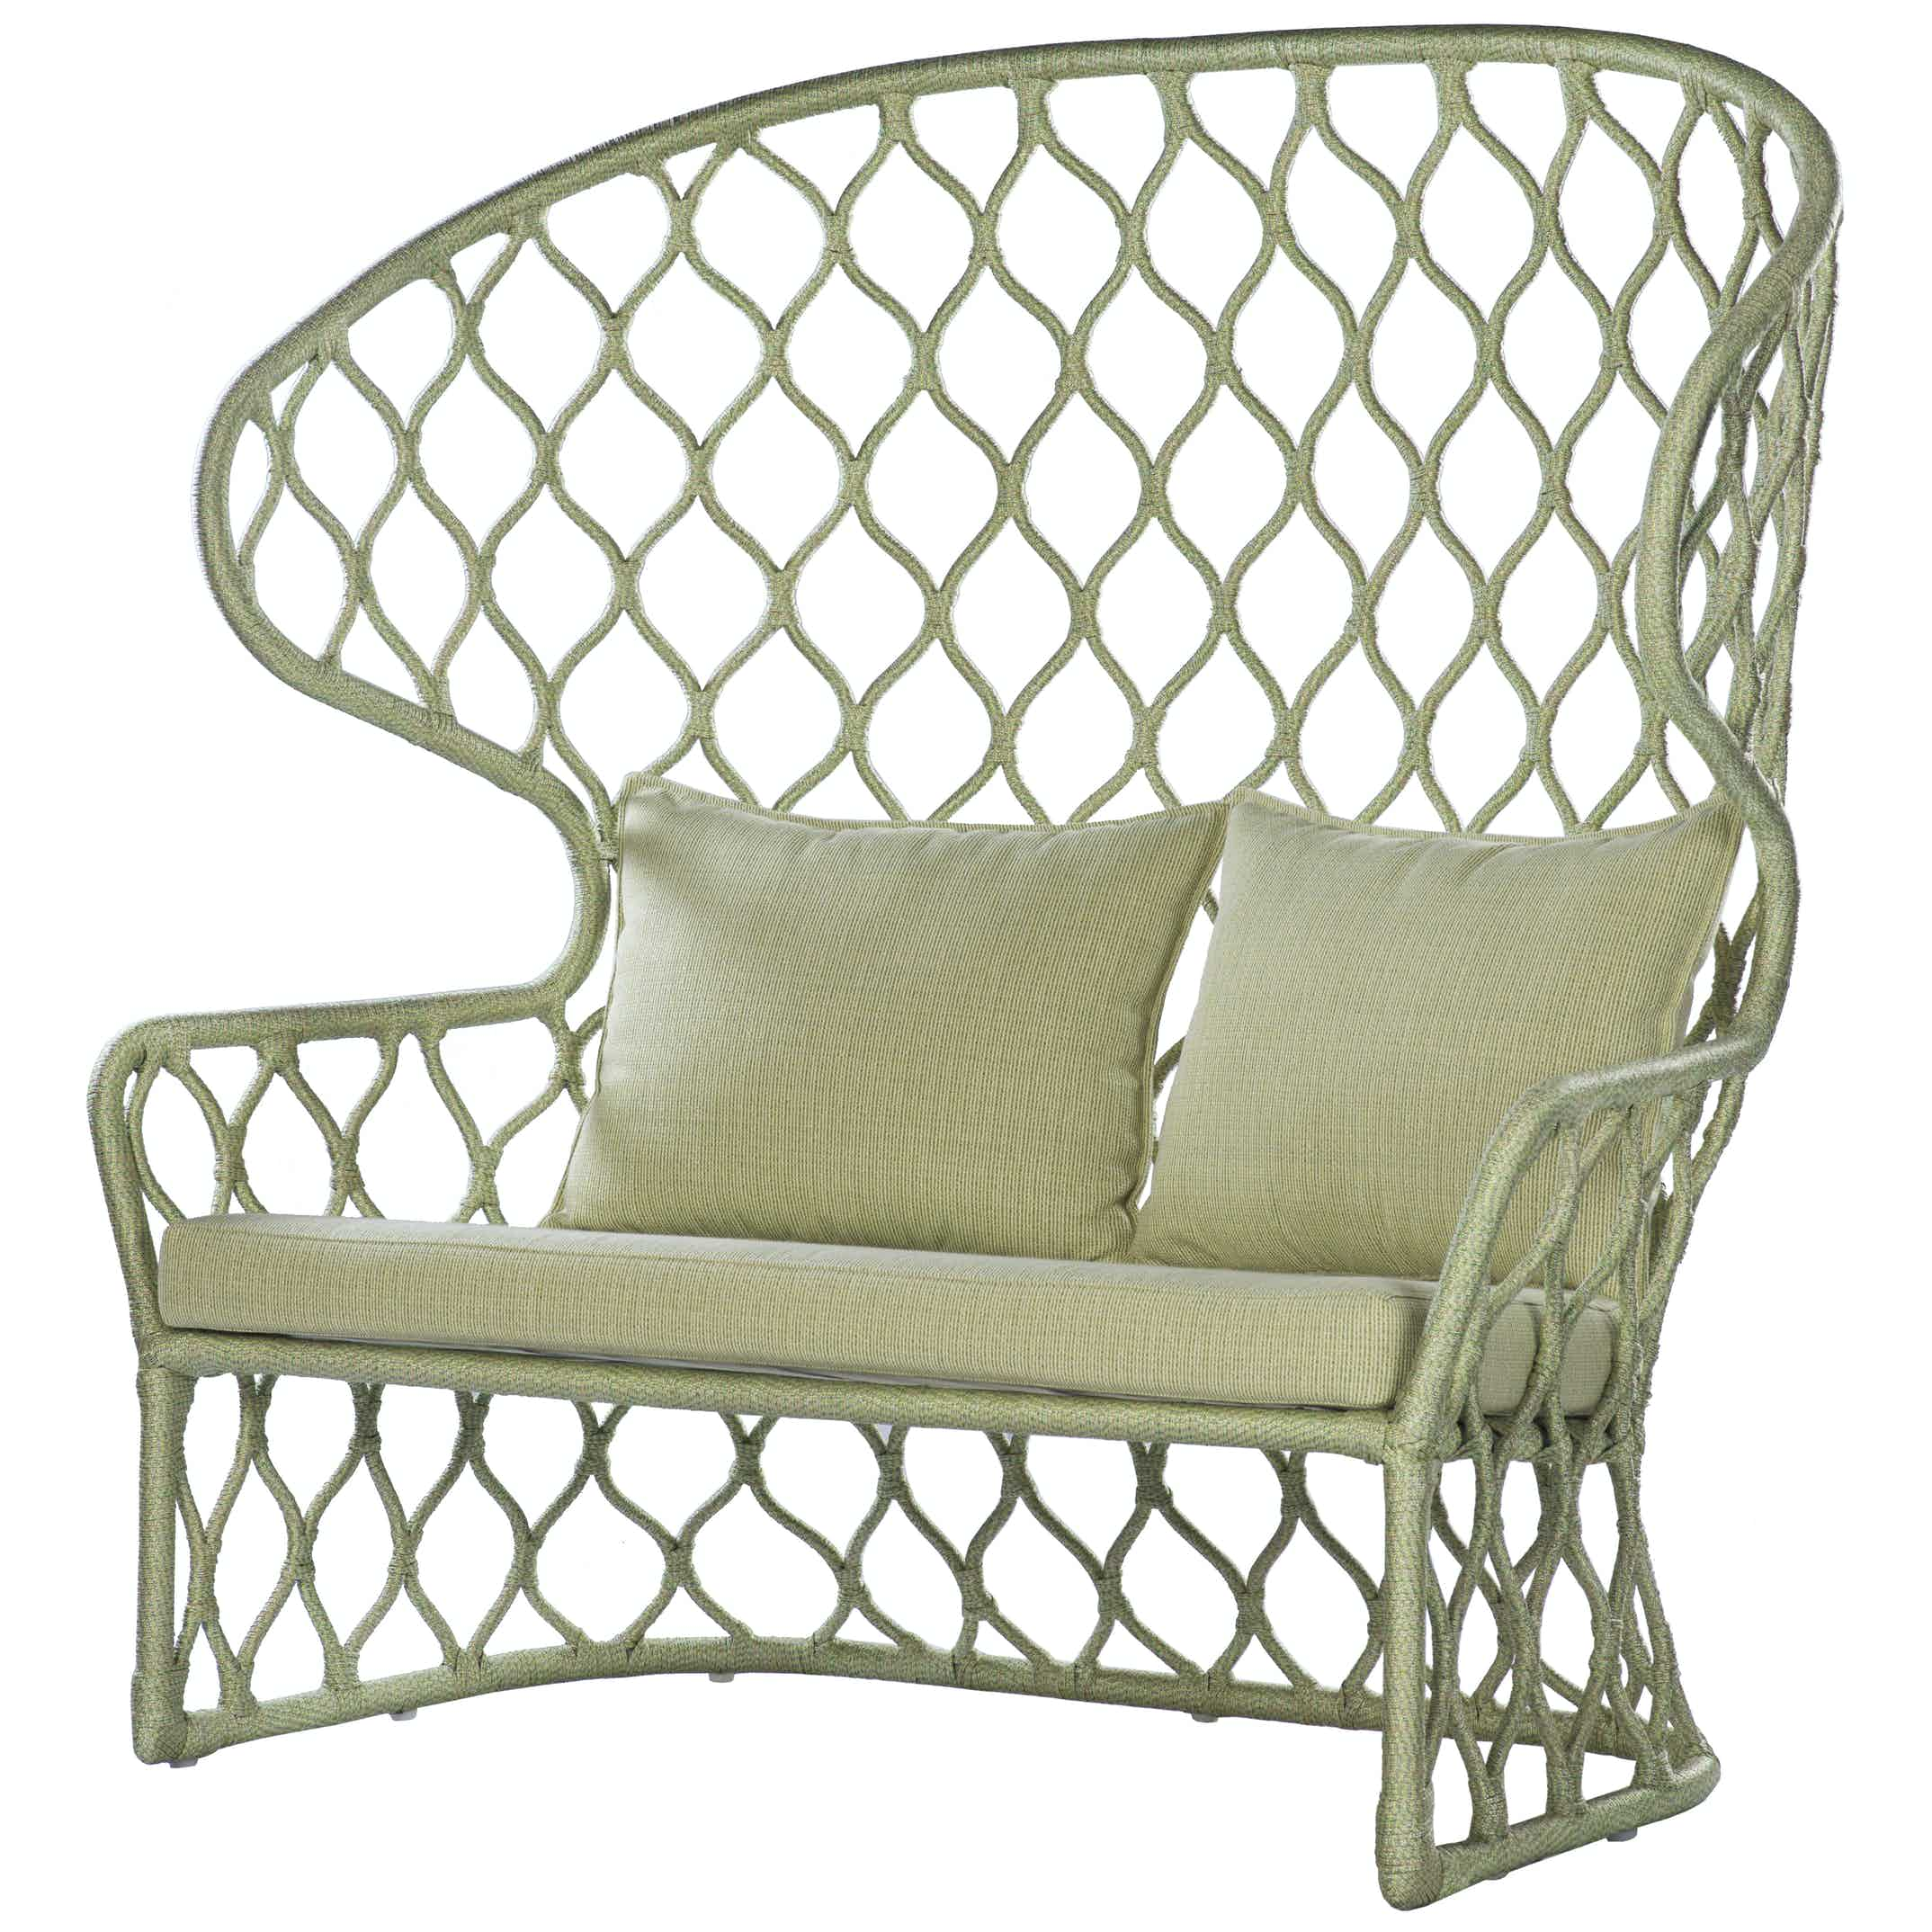 Tidelli painho loveseat thumbnail haute living